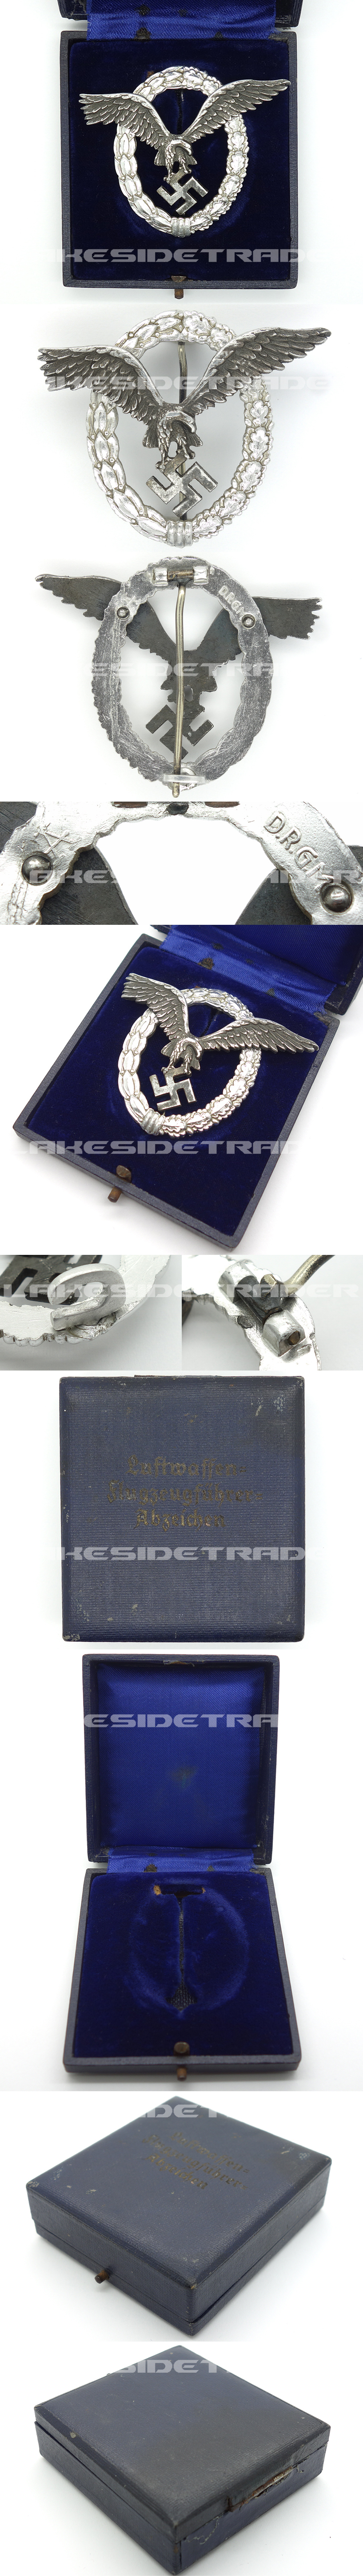 Cased Luftwaffe Pilot Badge by Assmann